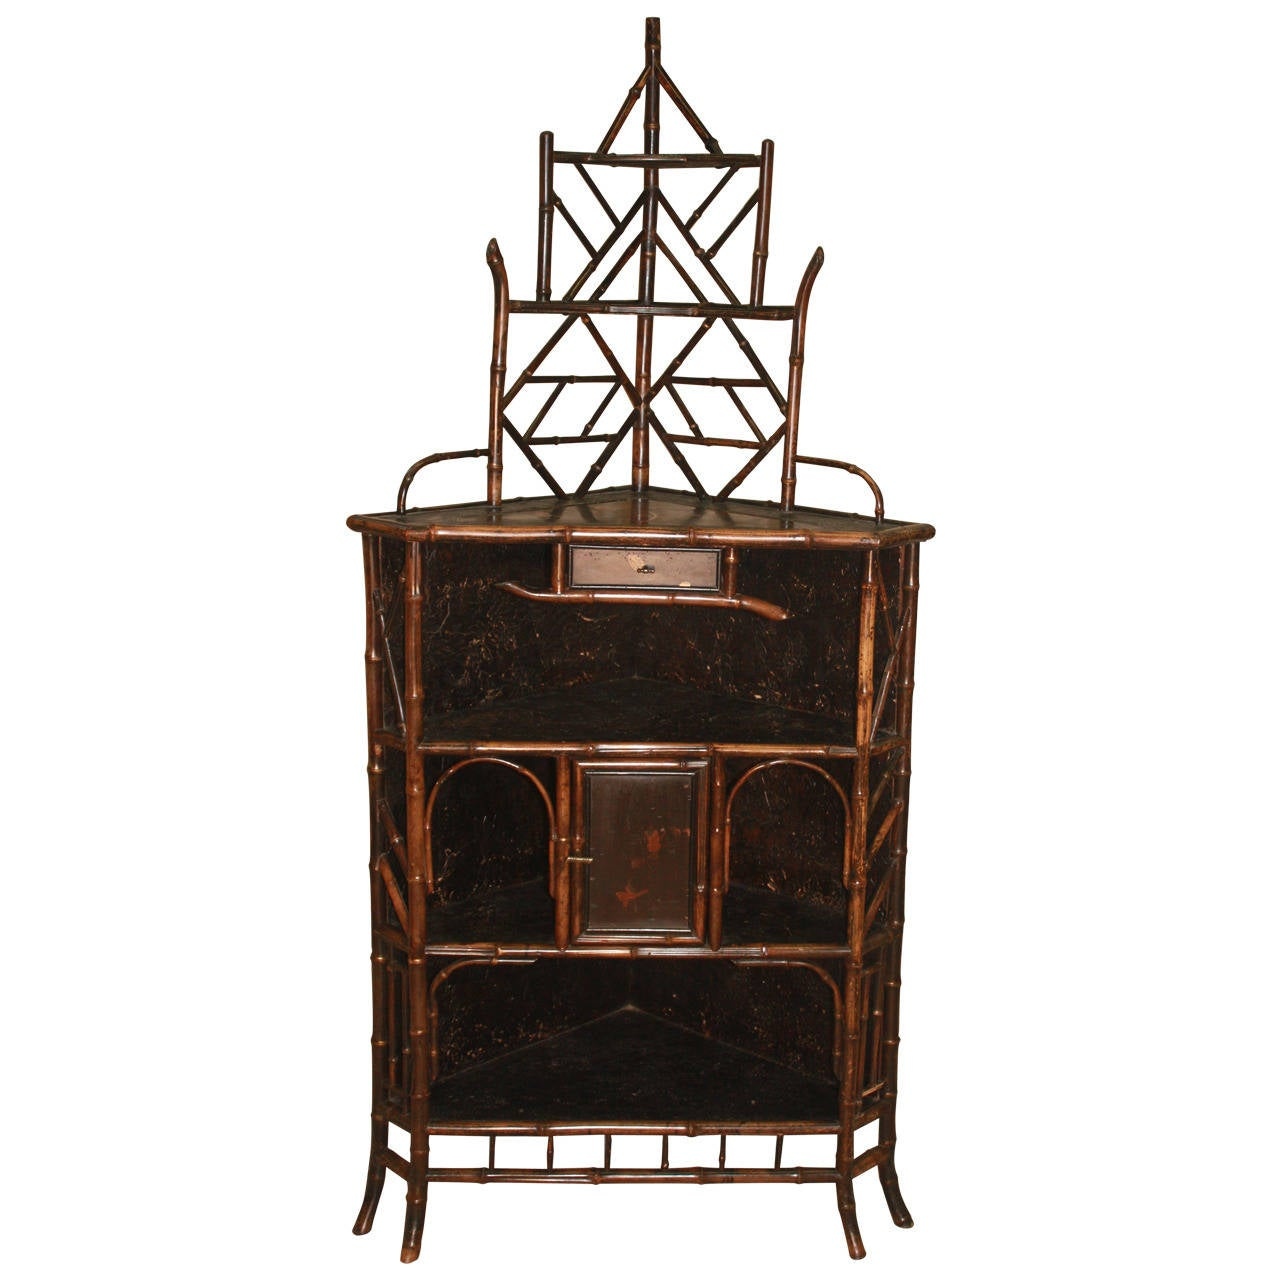 Charmant 19th Century Chinoiserie Bamboo Corner Cabinet For Sale